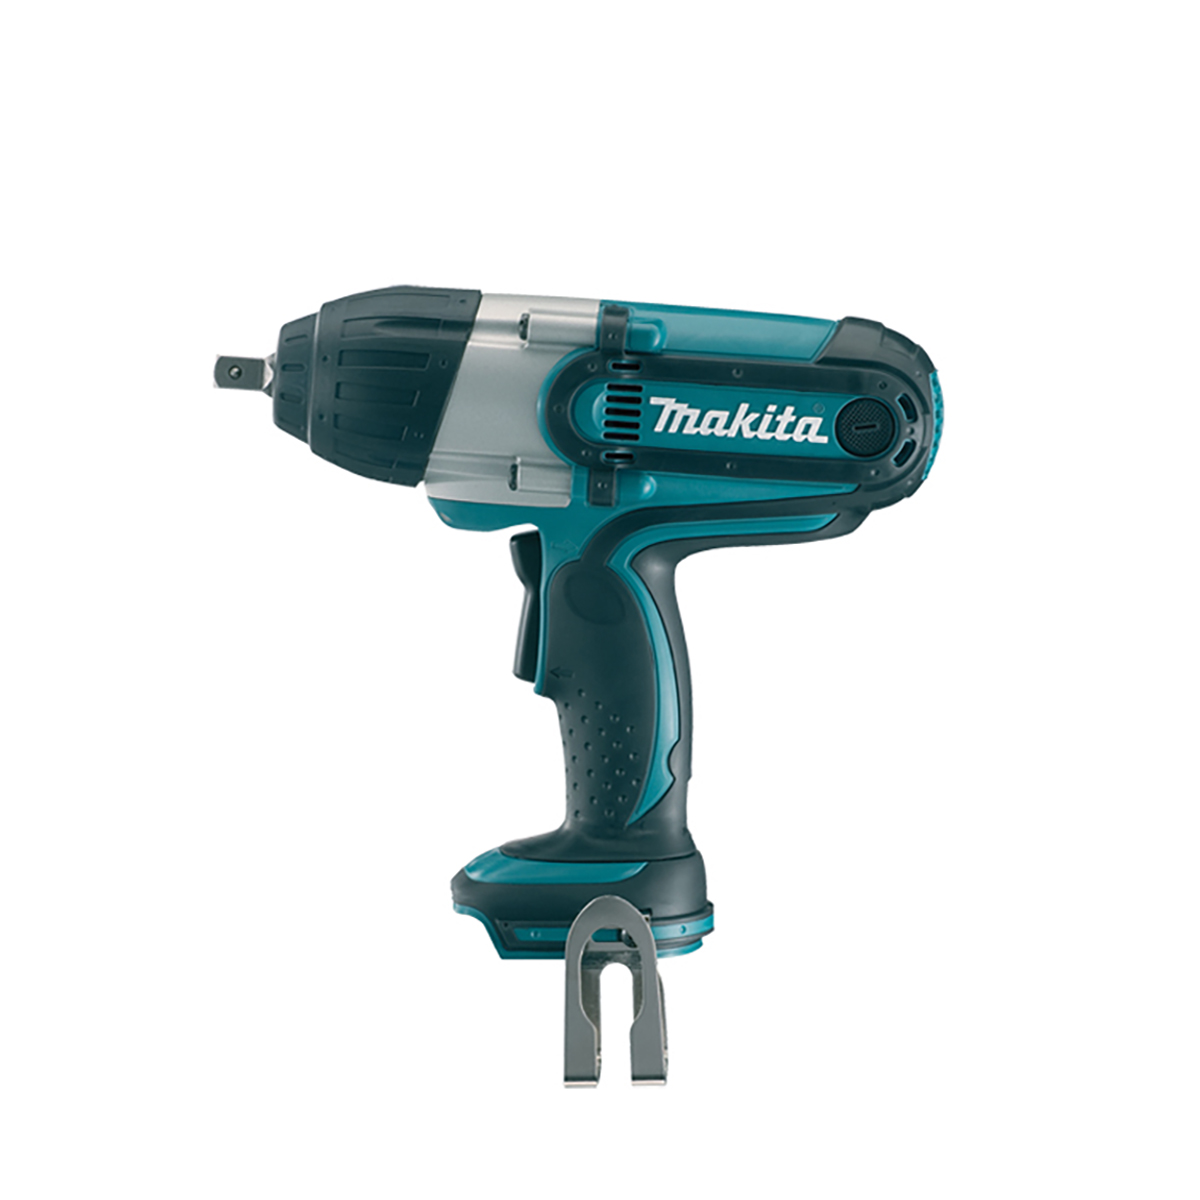 Makita DTW450Z 18v Impact wrench – 1/2″ square drive